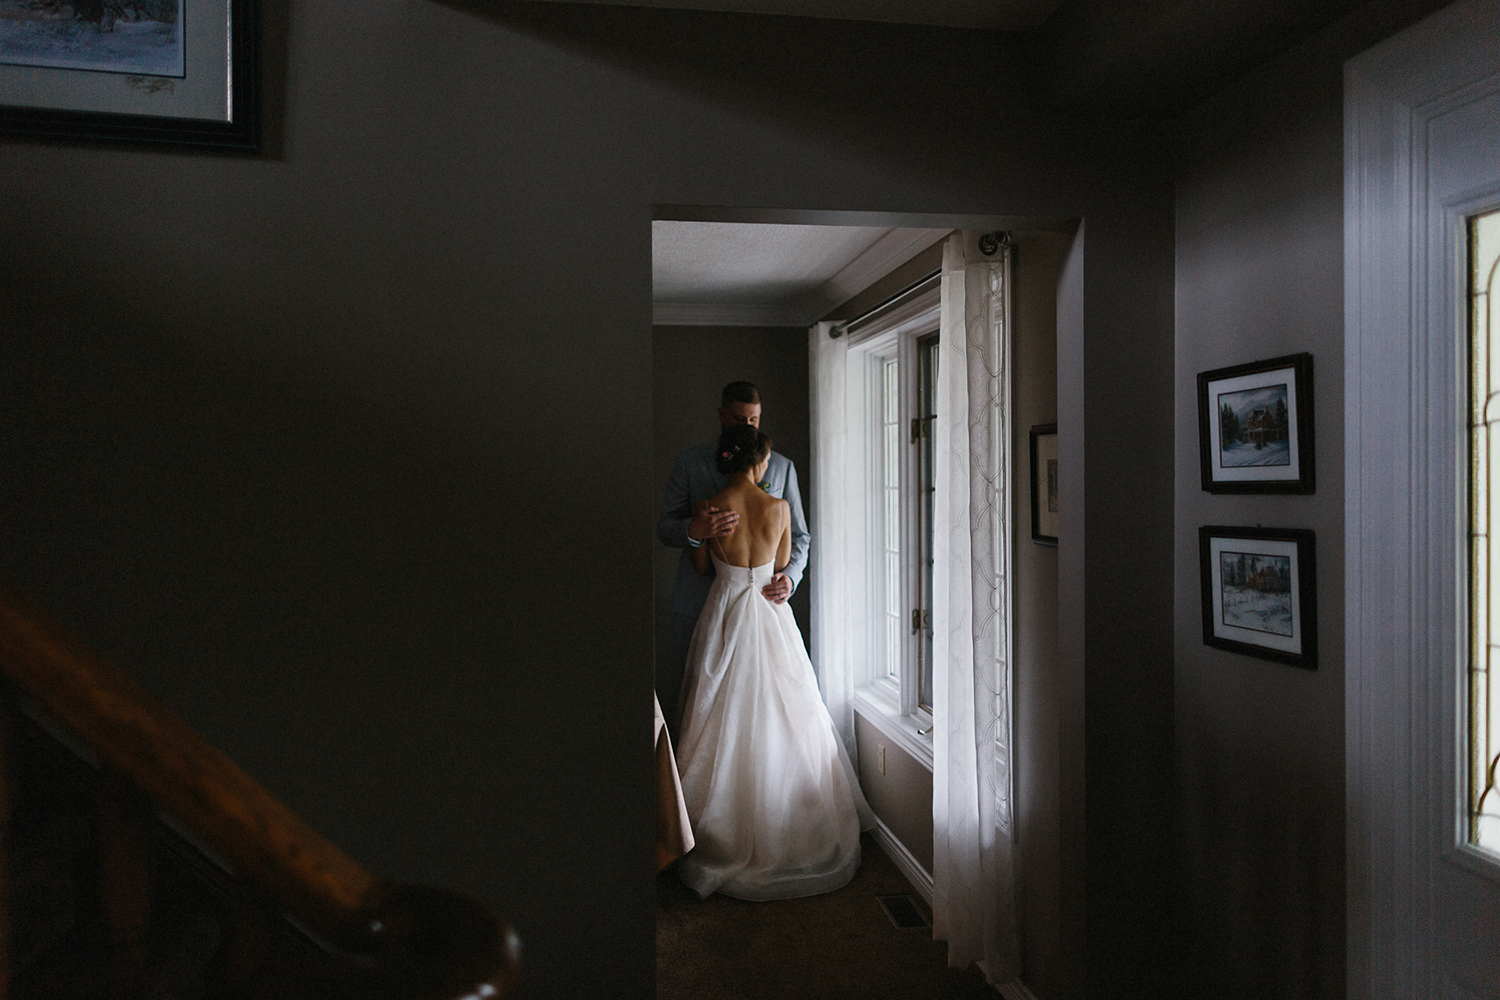 Best-Toronto-Wedding-Photographers-Photojournalistic-Wedding-Photography-in-Toronto-Ryanne-Hollies-Photography-candid-documentary-bradford-family-farm-rustic-venue-inspiration-moody-indoor-photos-by-window-bride-and-groom-at-home.jpg